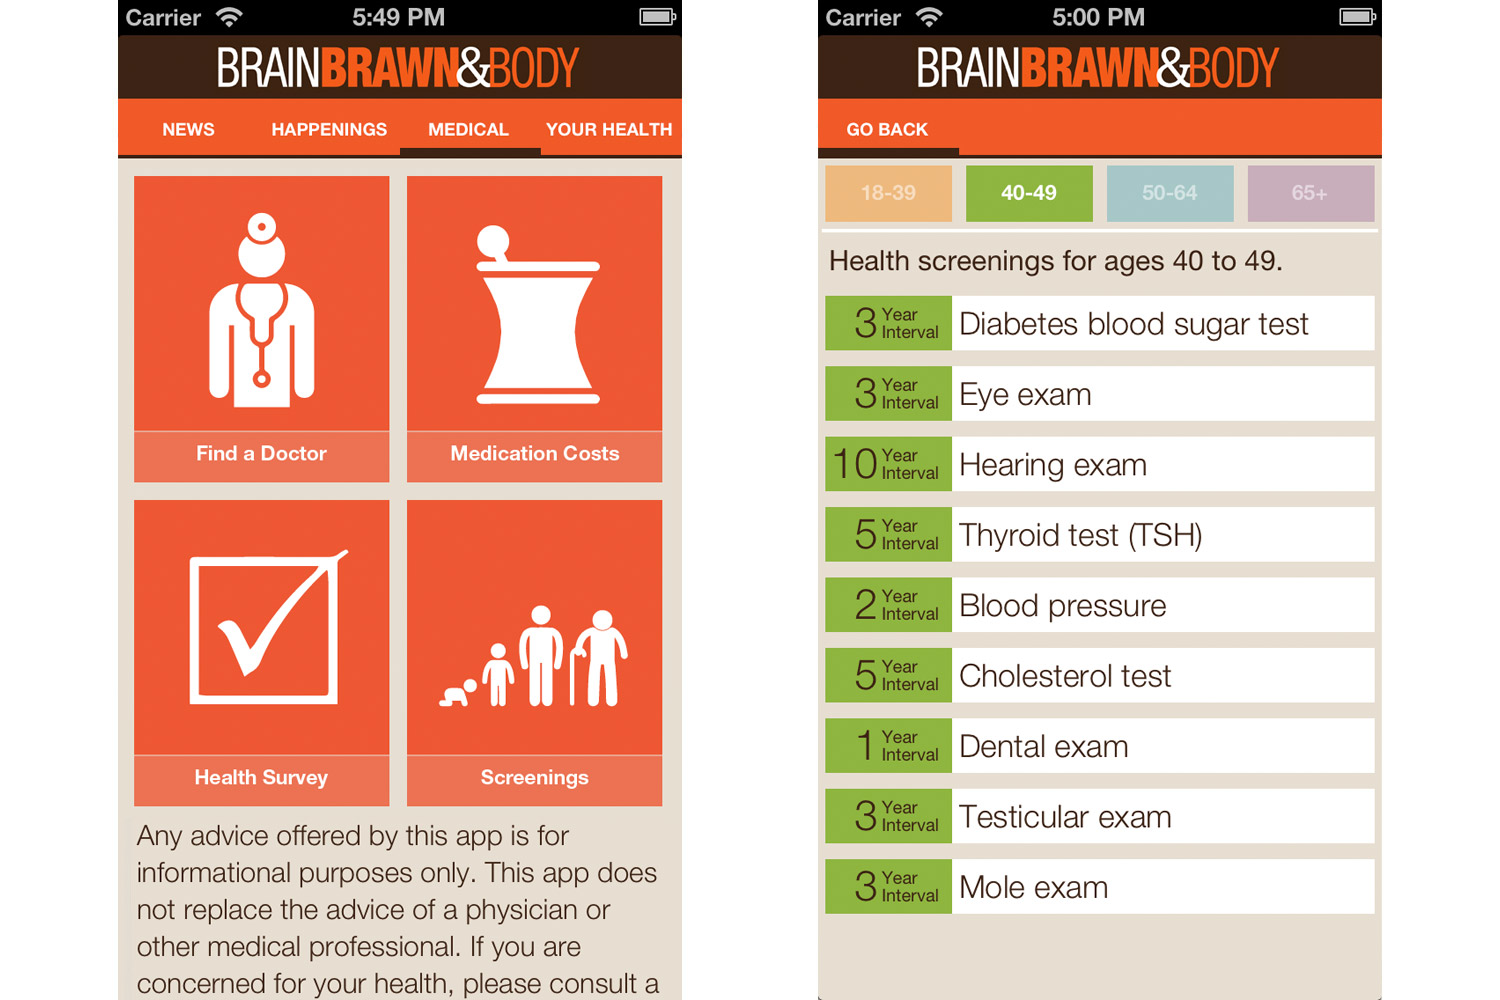 Brain Brawn and Body App Health Screenings